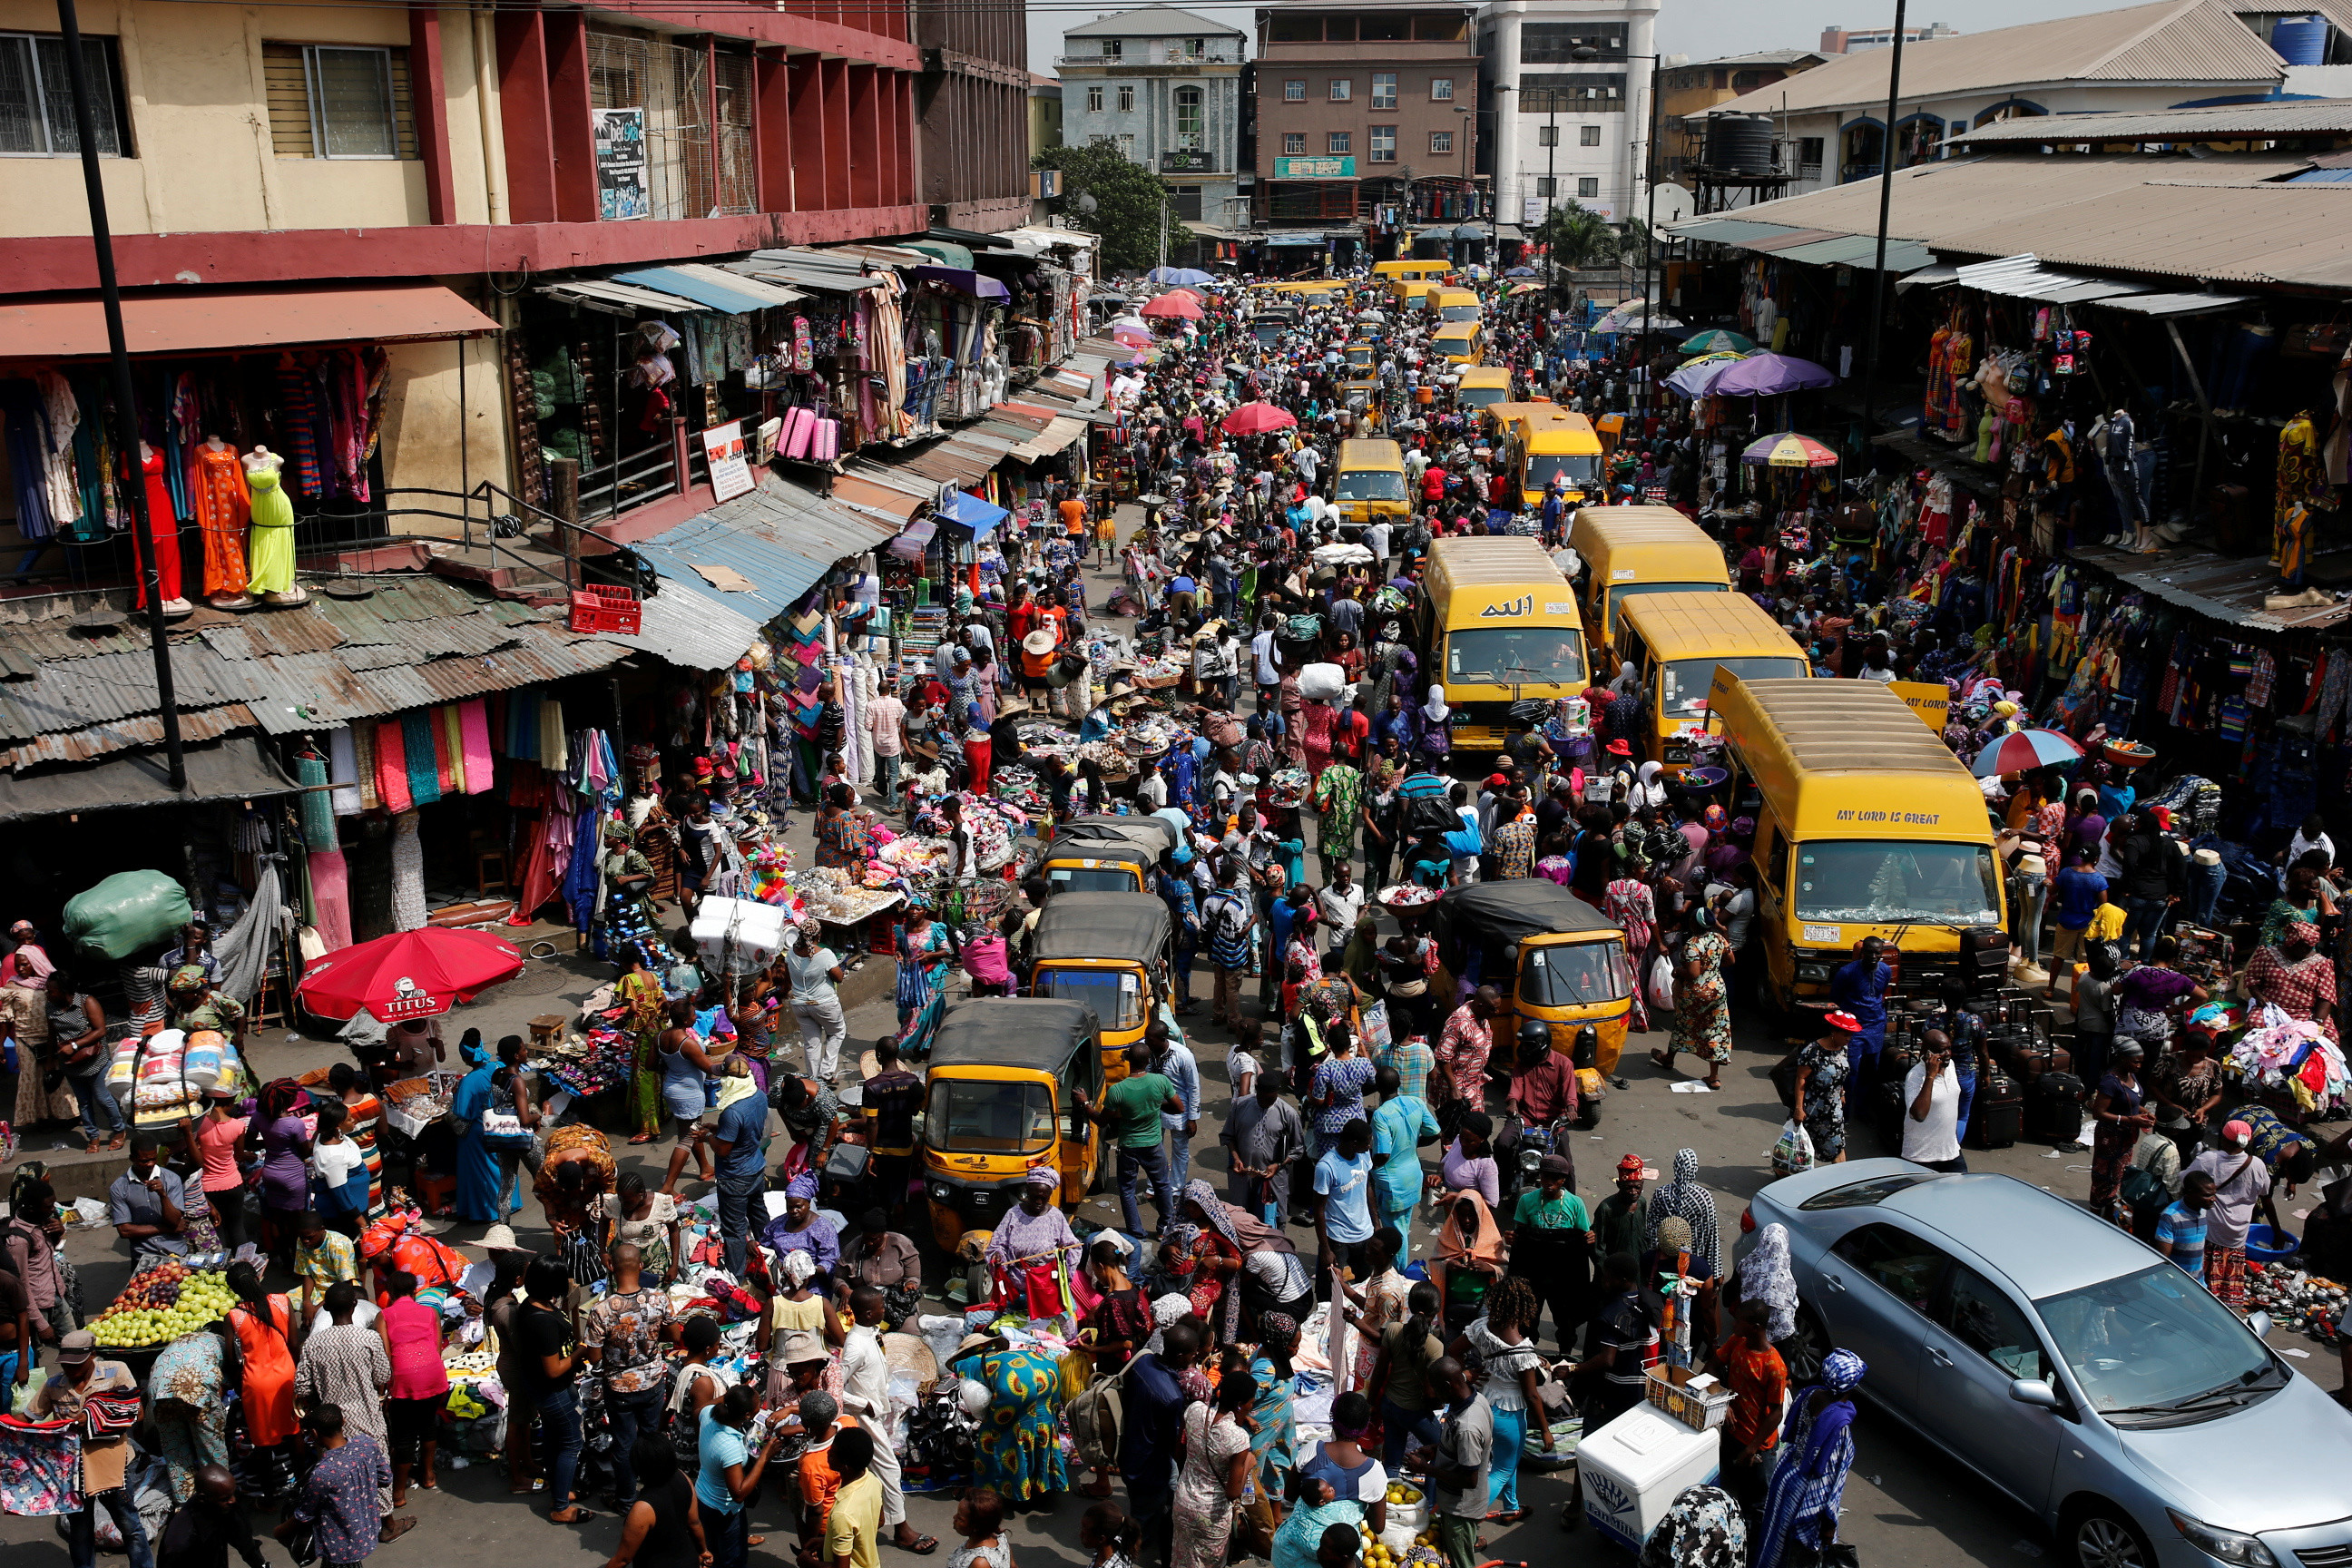 People crowd a street at the central business district in Nigeria's commercial capital Lagos ahead of Christmas December 23, 2016.